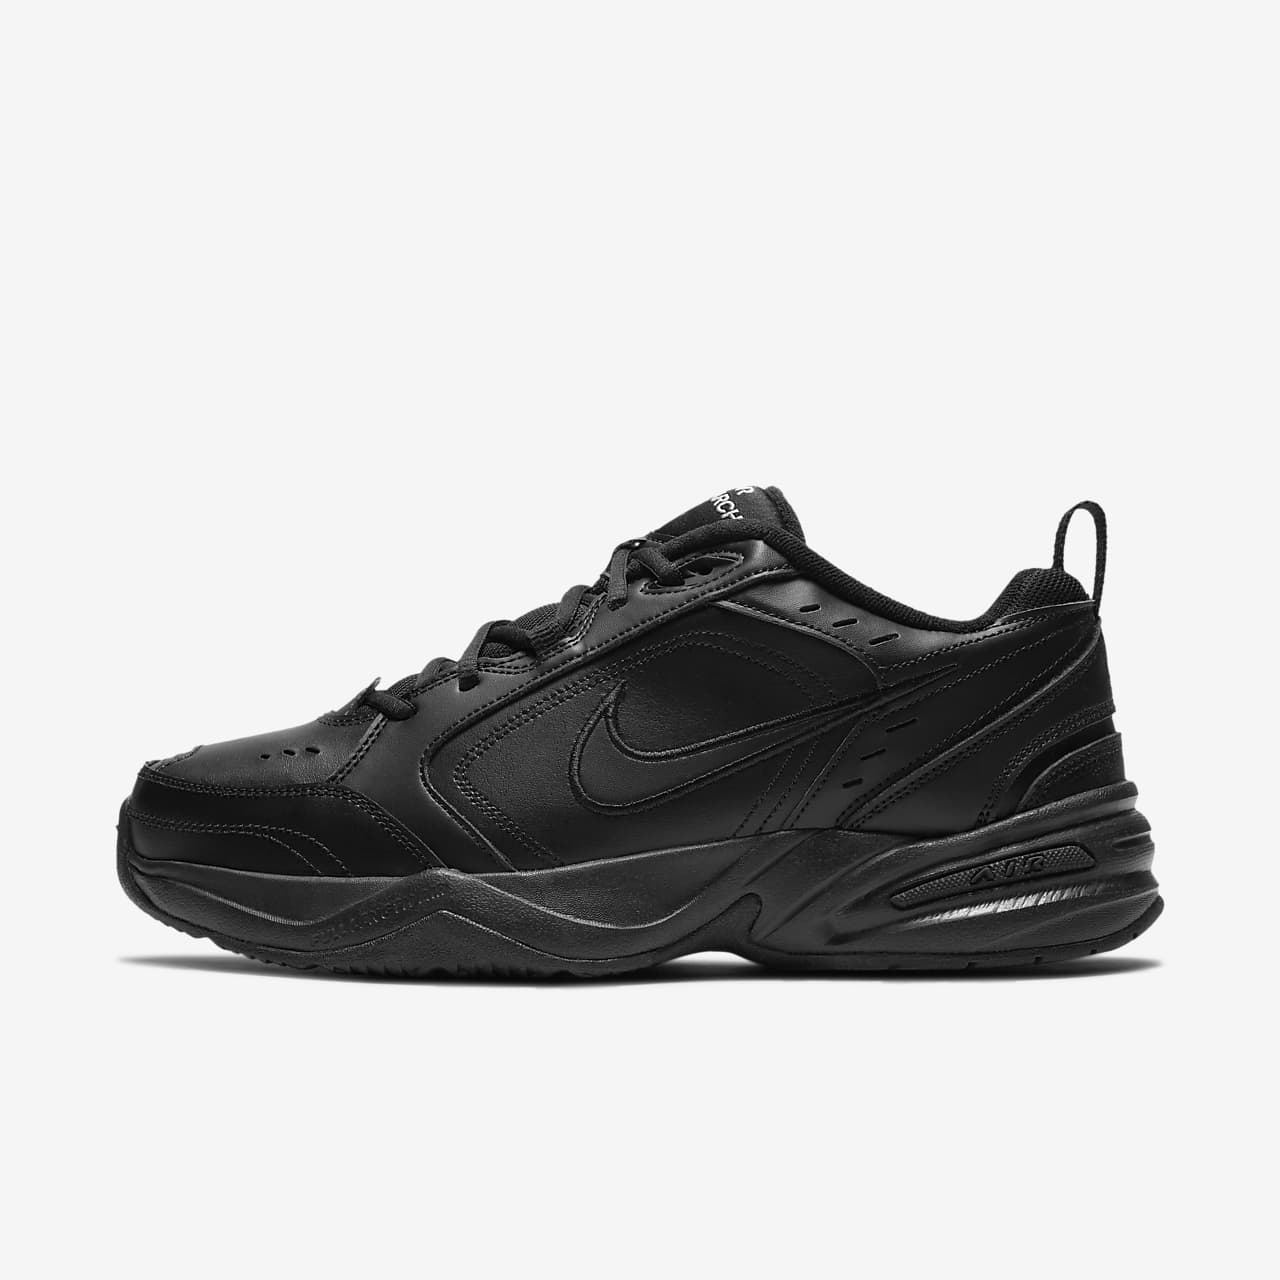 Nike Air Monarch IV Black Black Leather For Men's New In Box 415445 001